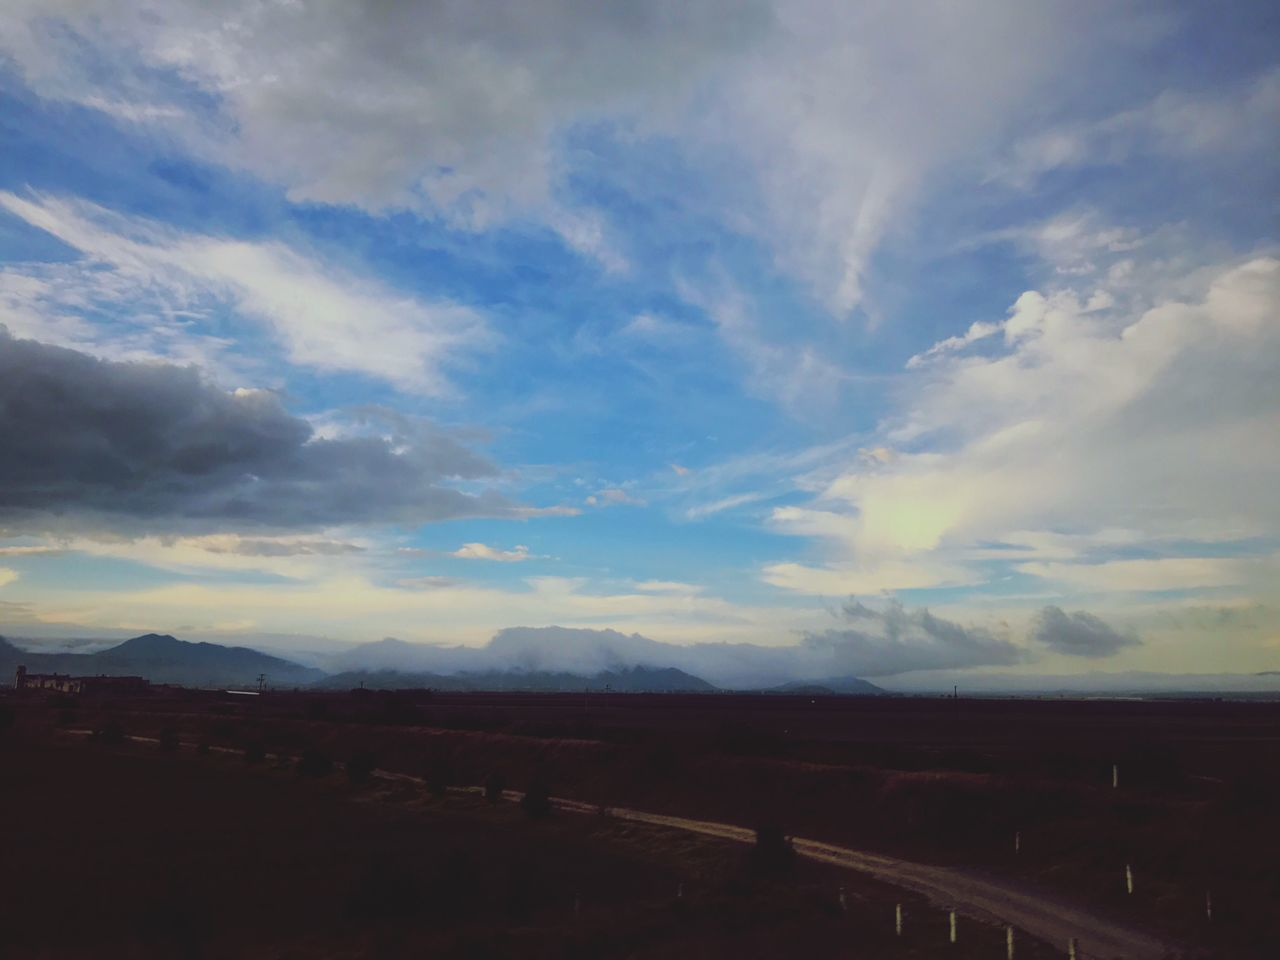 landscape, cloud - sky, sky, nature, no people, scenics, beauty in nature, tranquility, outdoors, day, rural scene